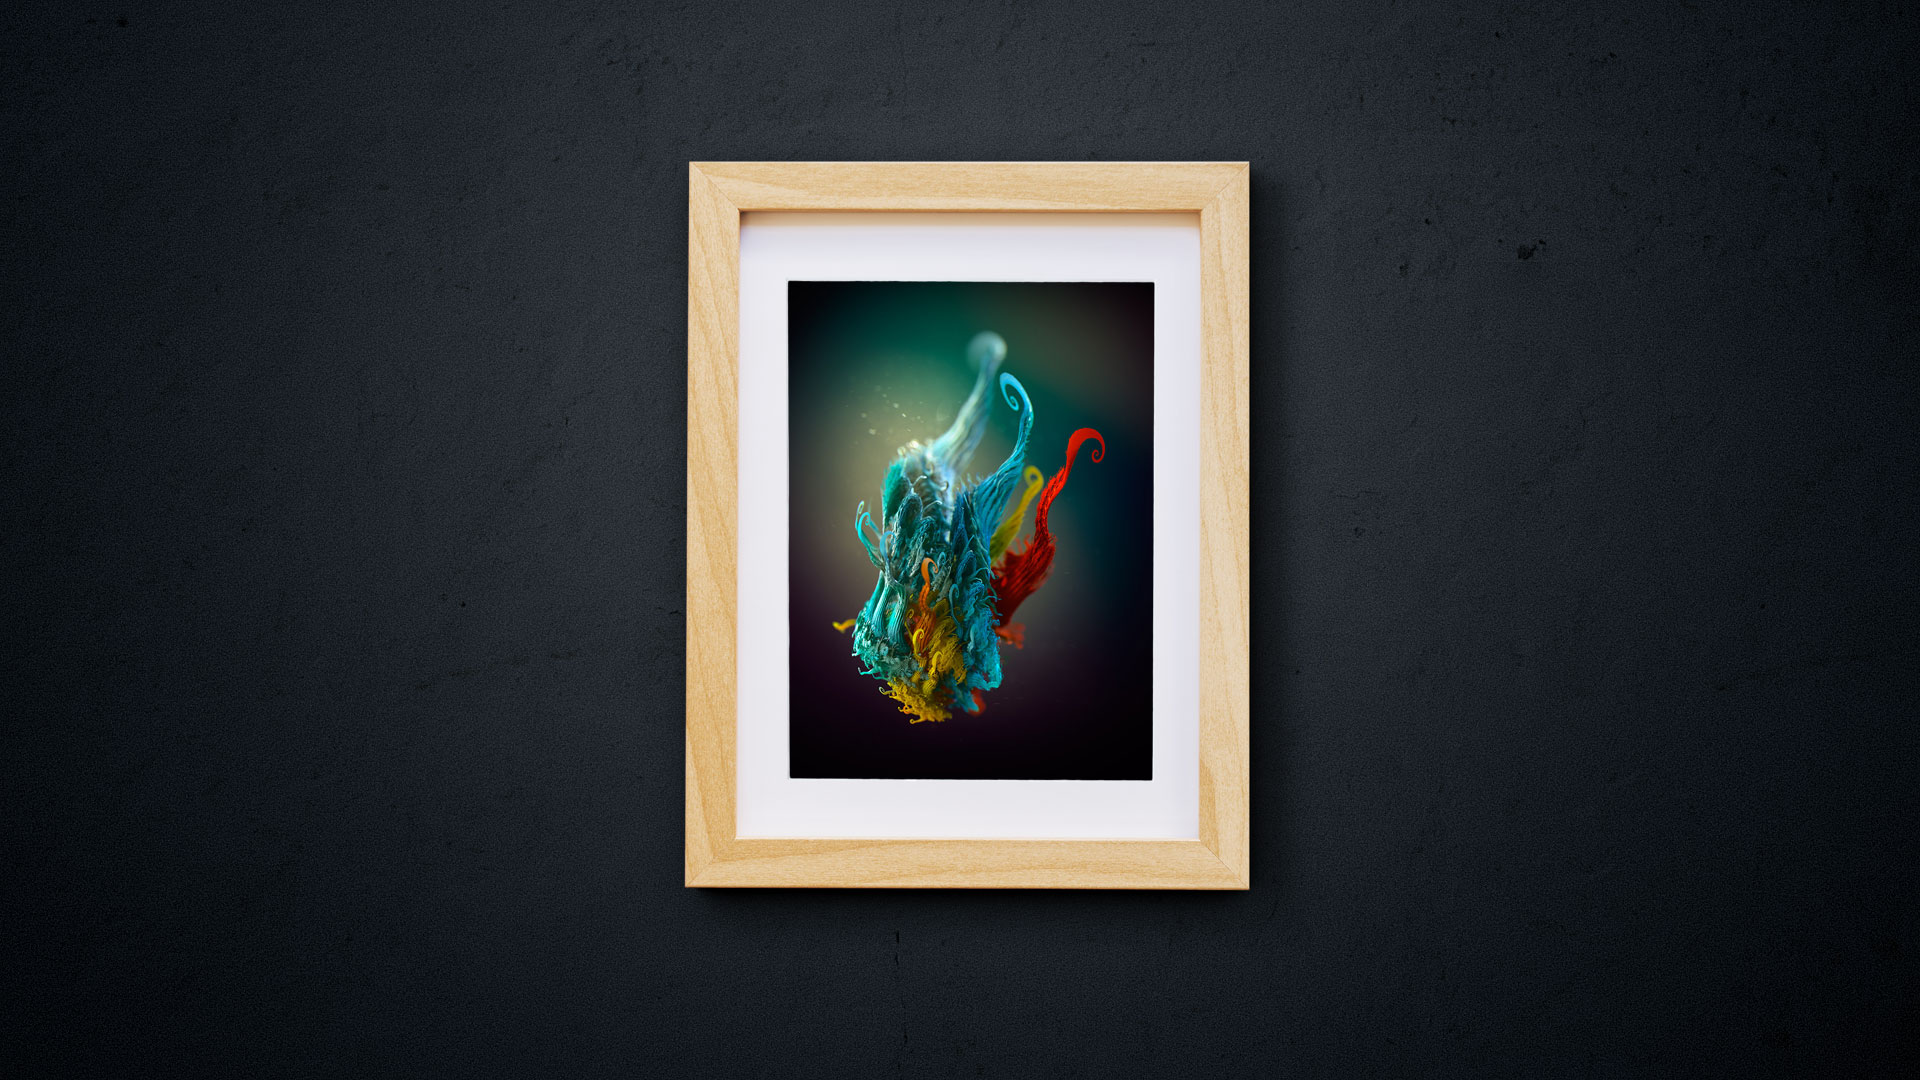 Art Prints are available on Society6 and Redbubble